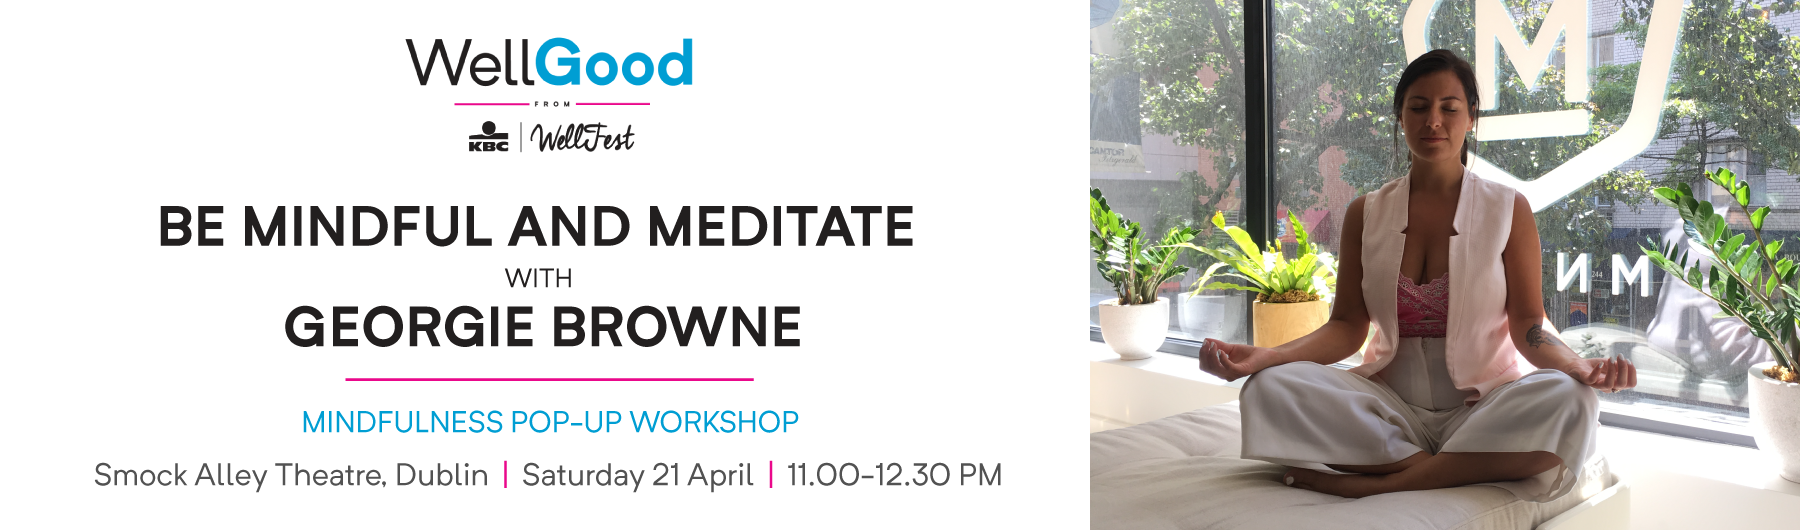 WellGood: Be Mindful and Meditate with Georgie Browne